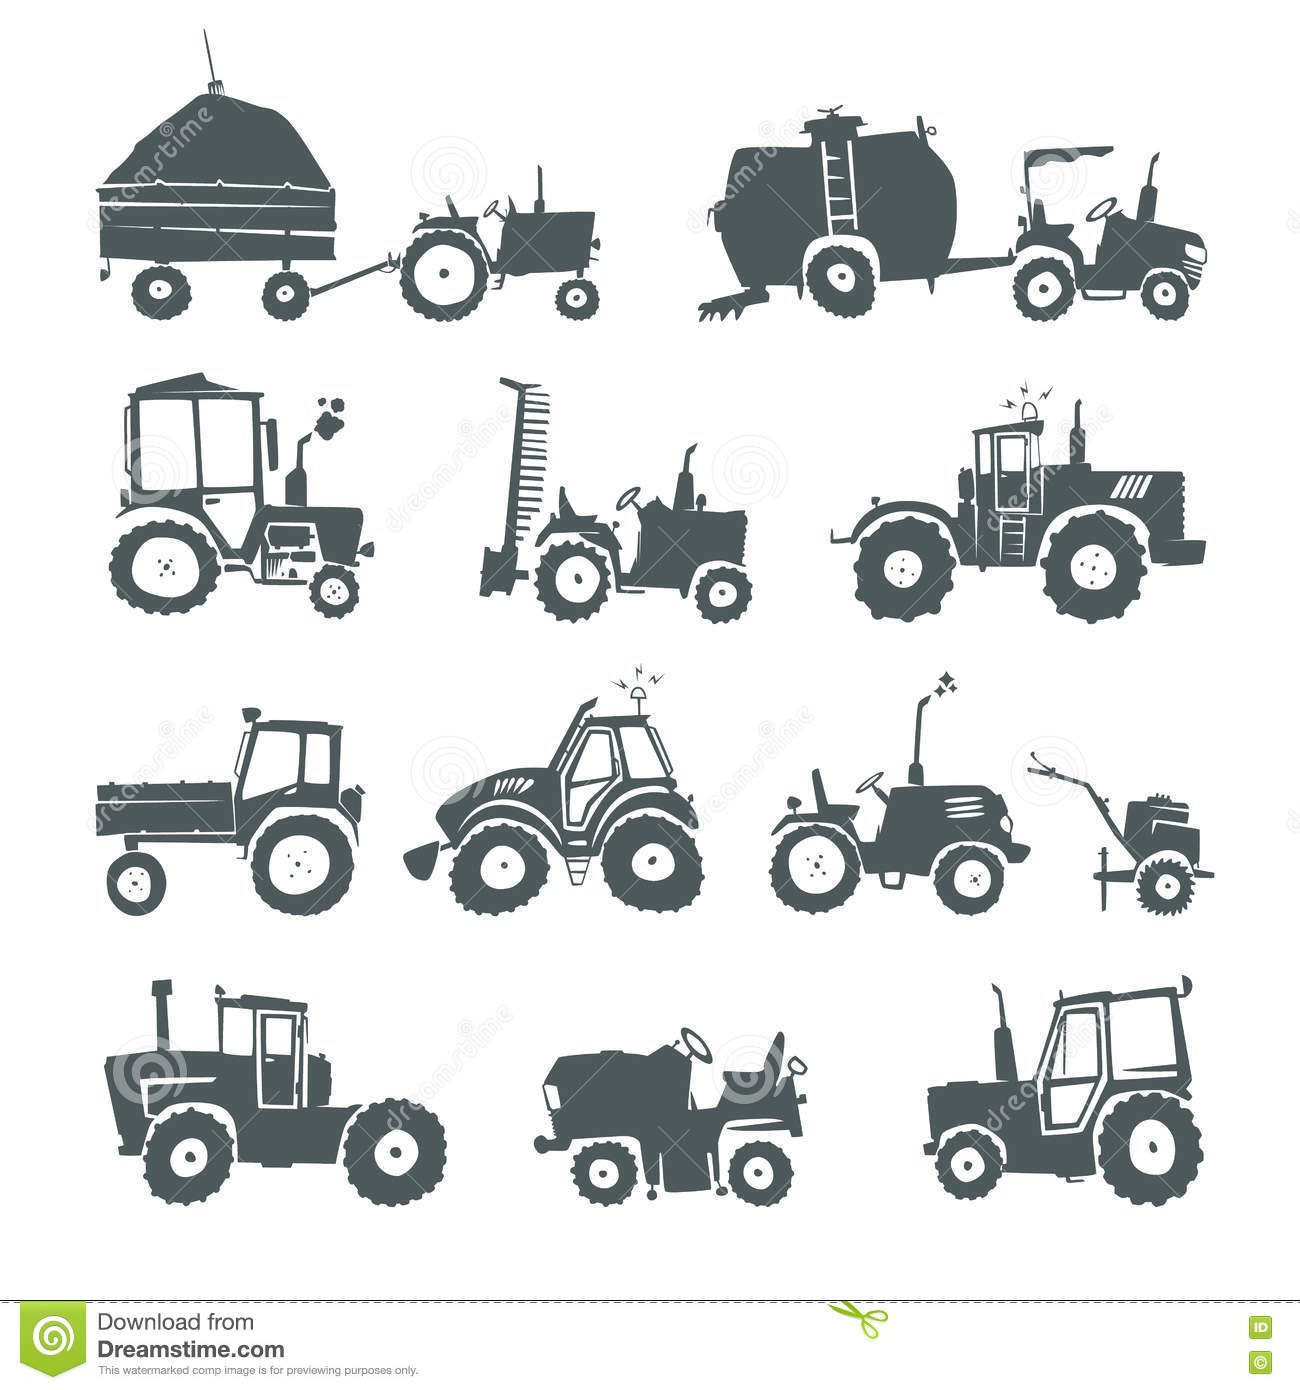 oliver tractor wiring diagram